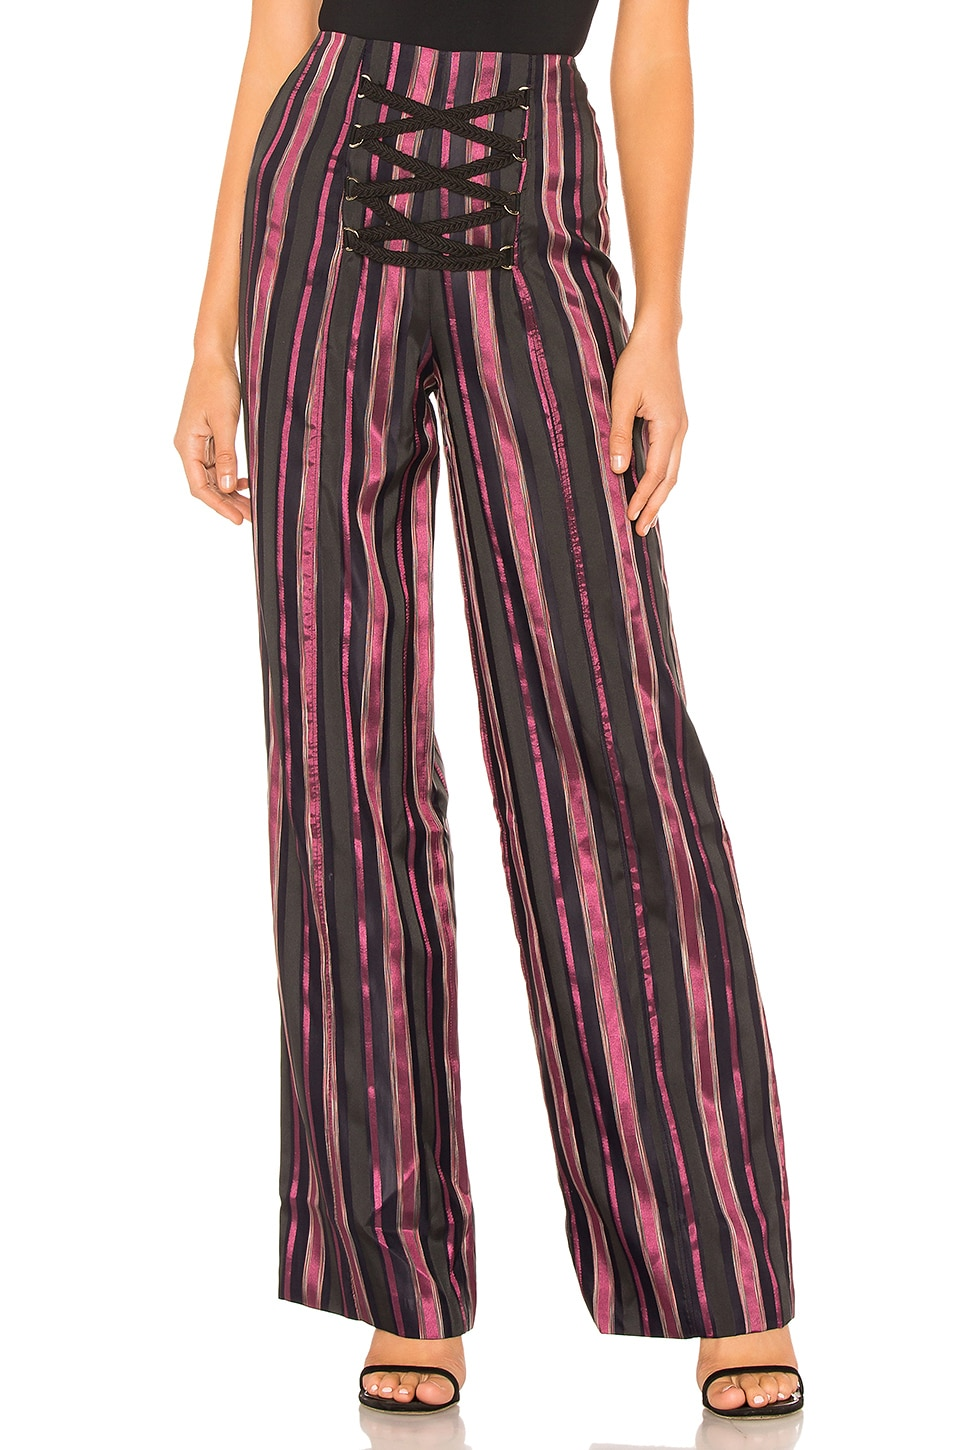 House of Harlow 1960 x REVOLVE Kitty Pant in Purple & Noir Stripe